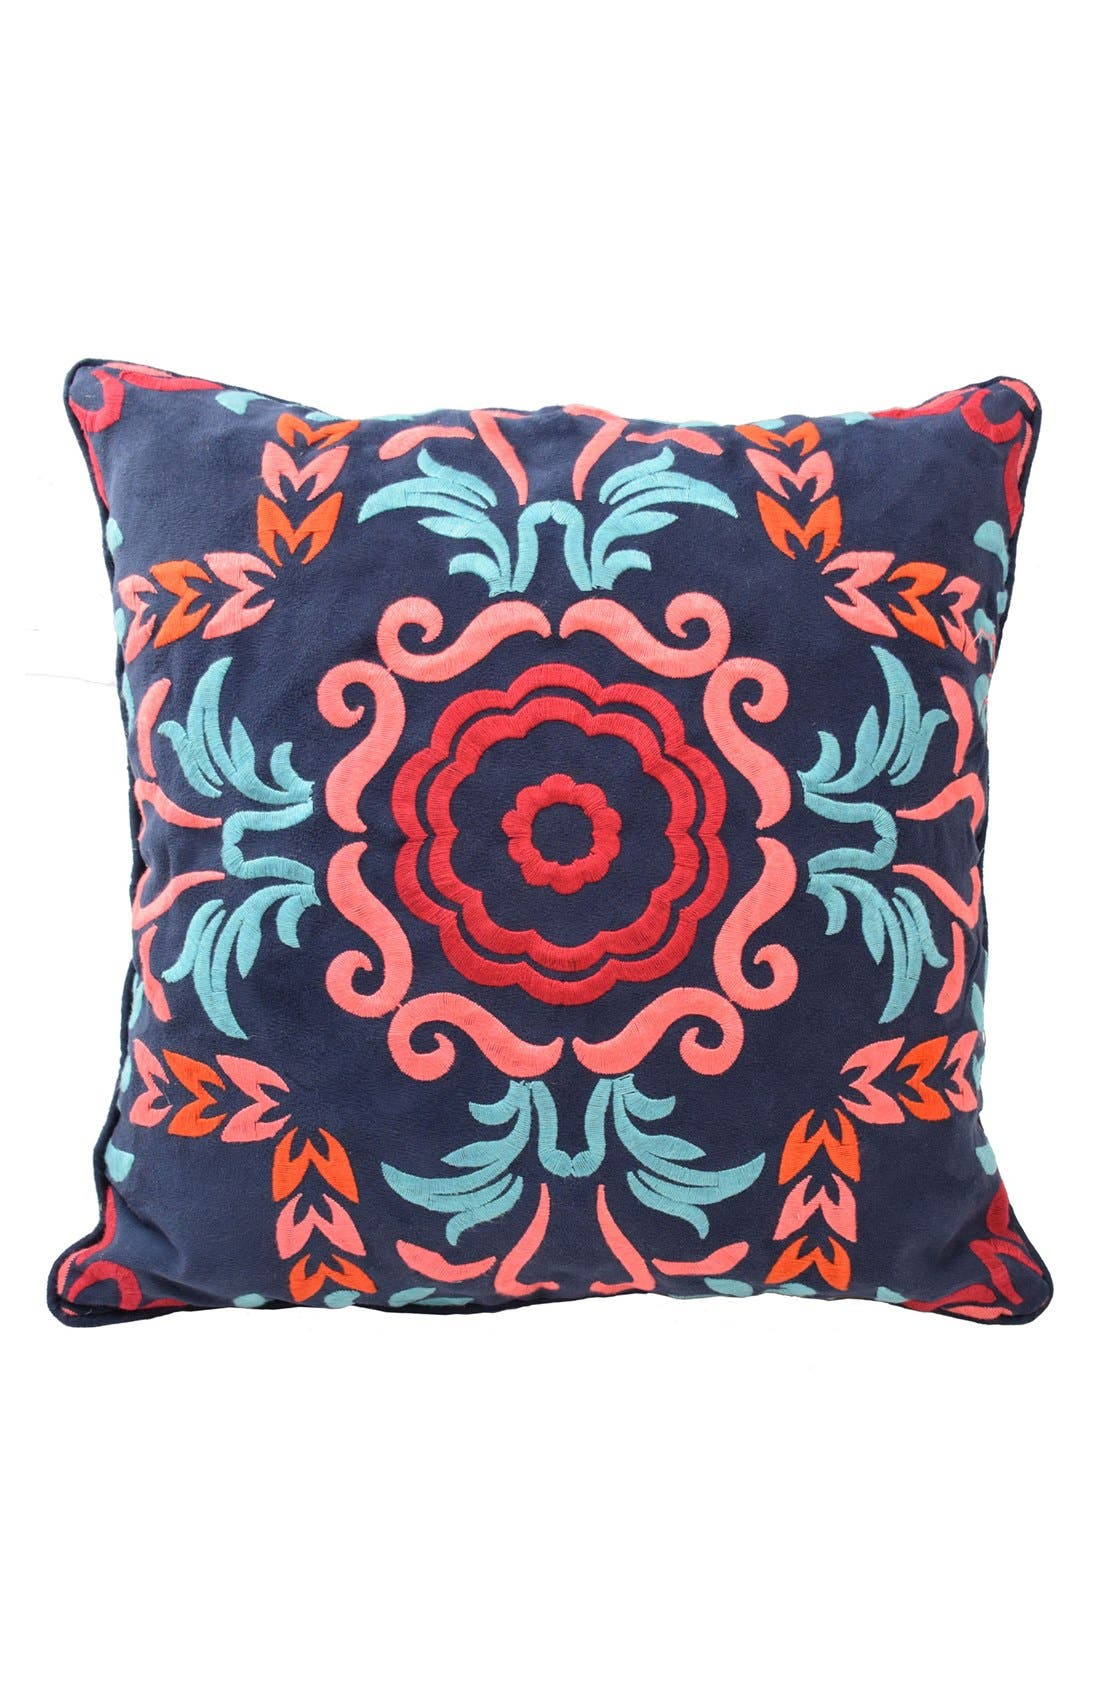 BLISSLIVING HOME 'Viva Mexico' Pillow